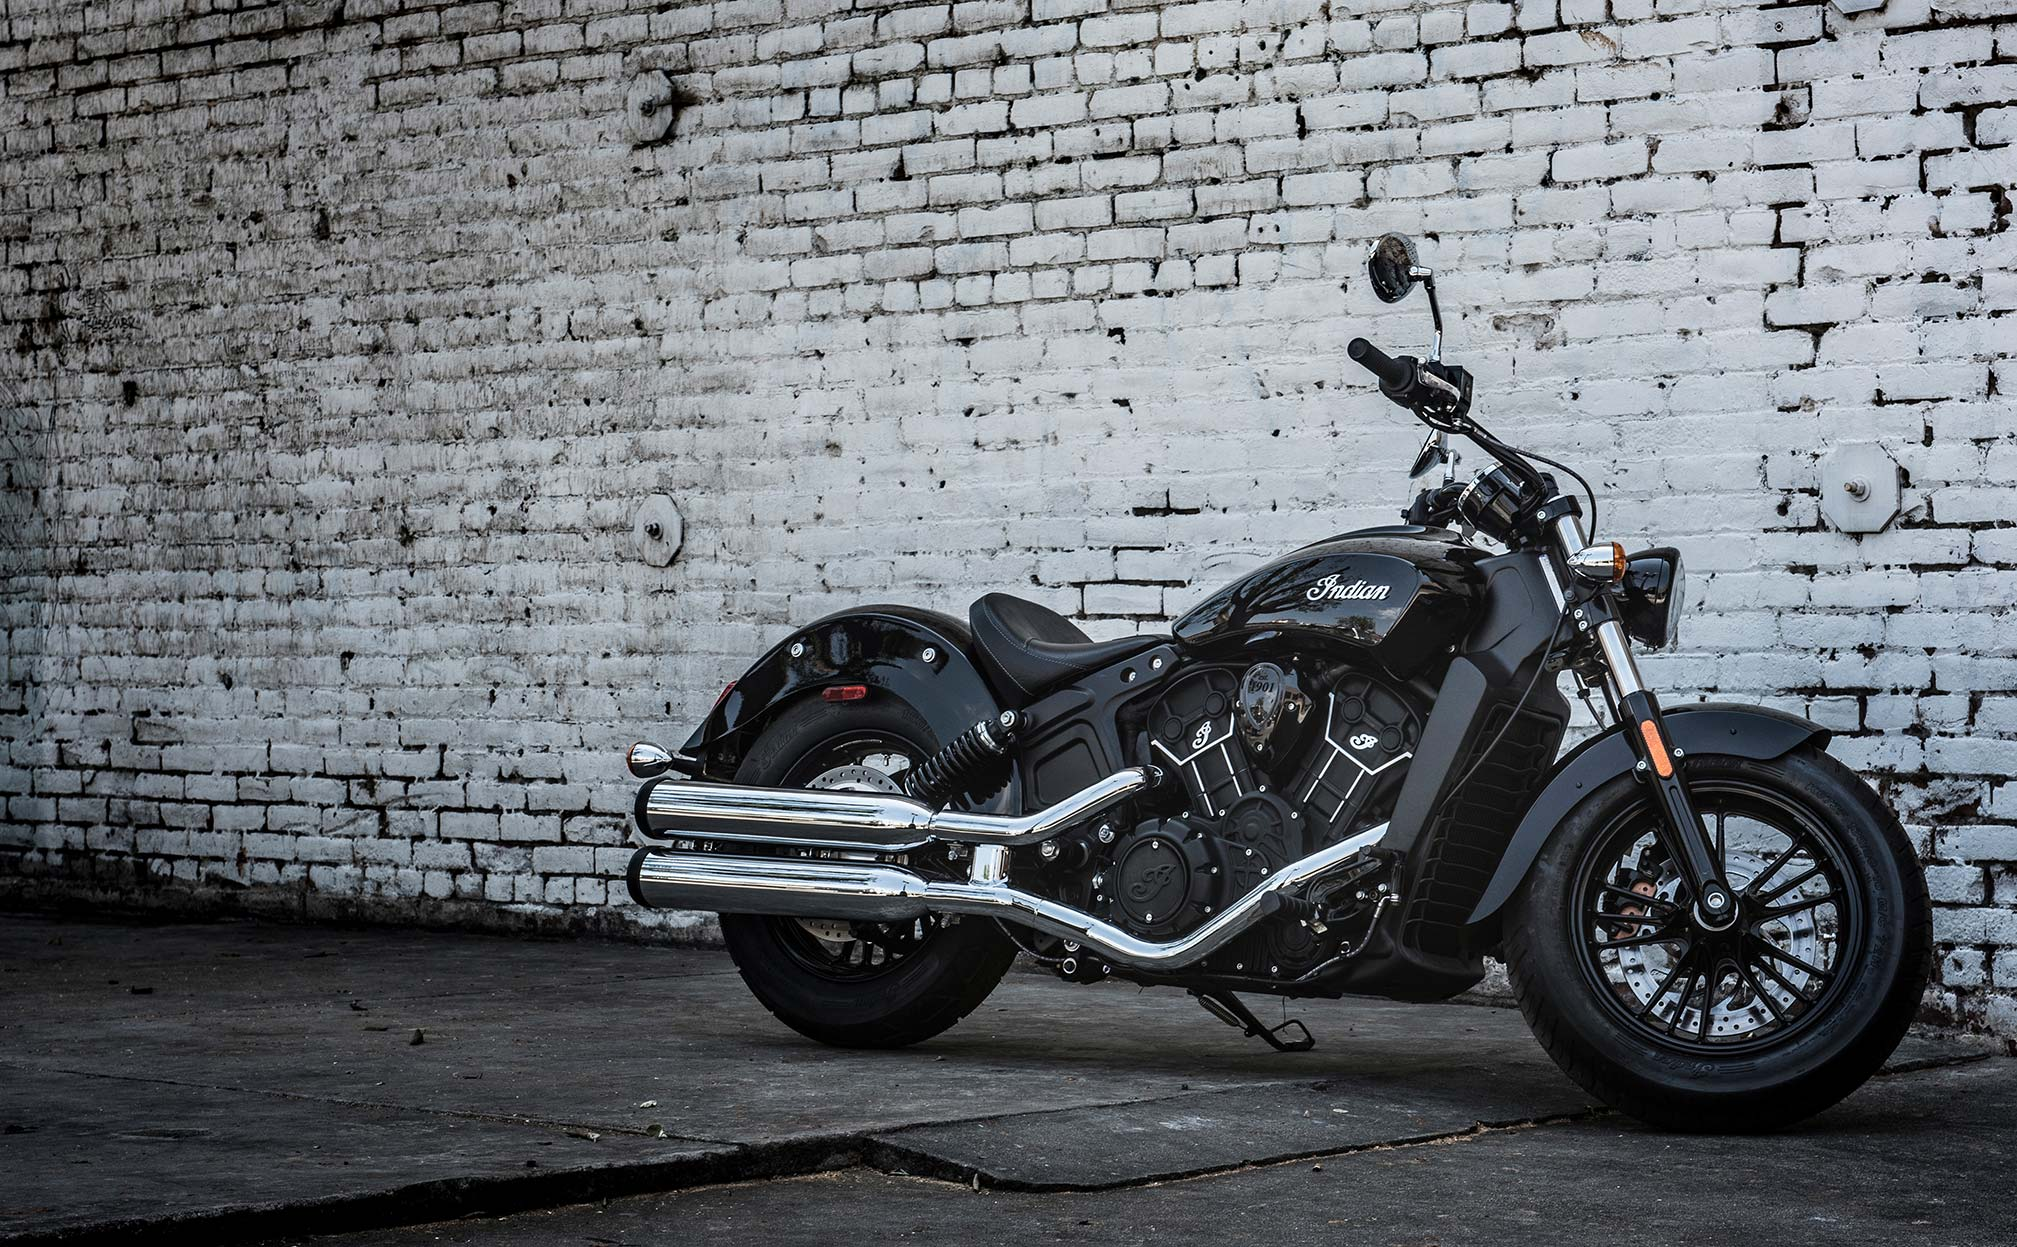 6 indian scout sixty hd wallpapers background images - Indian scout bike hd wallpaper ...